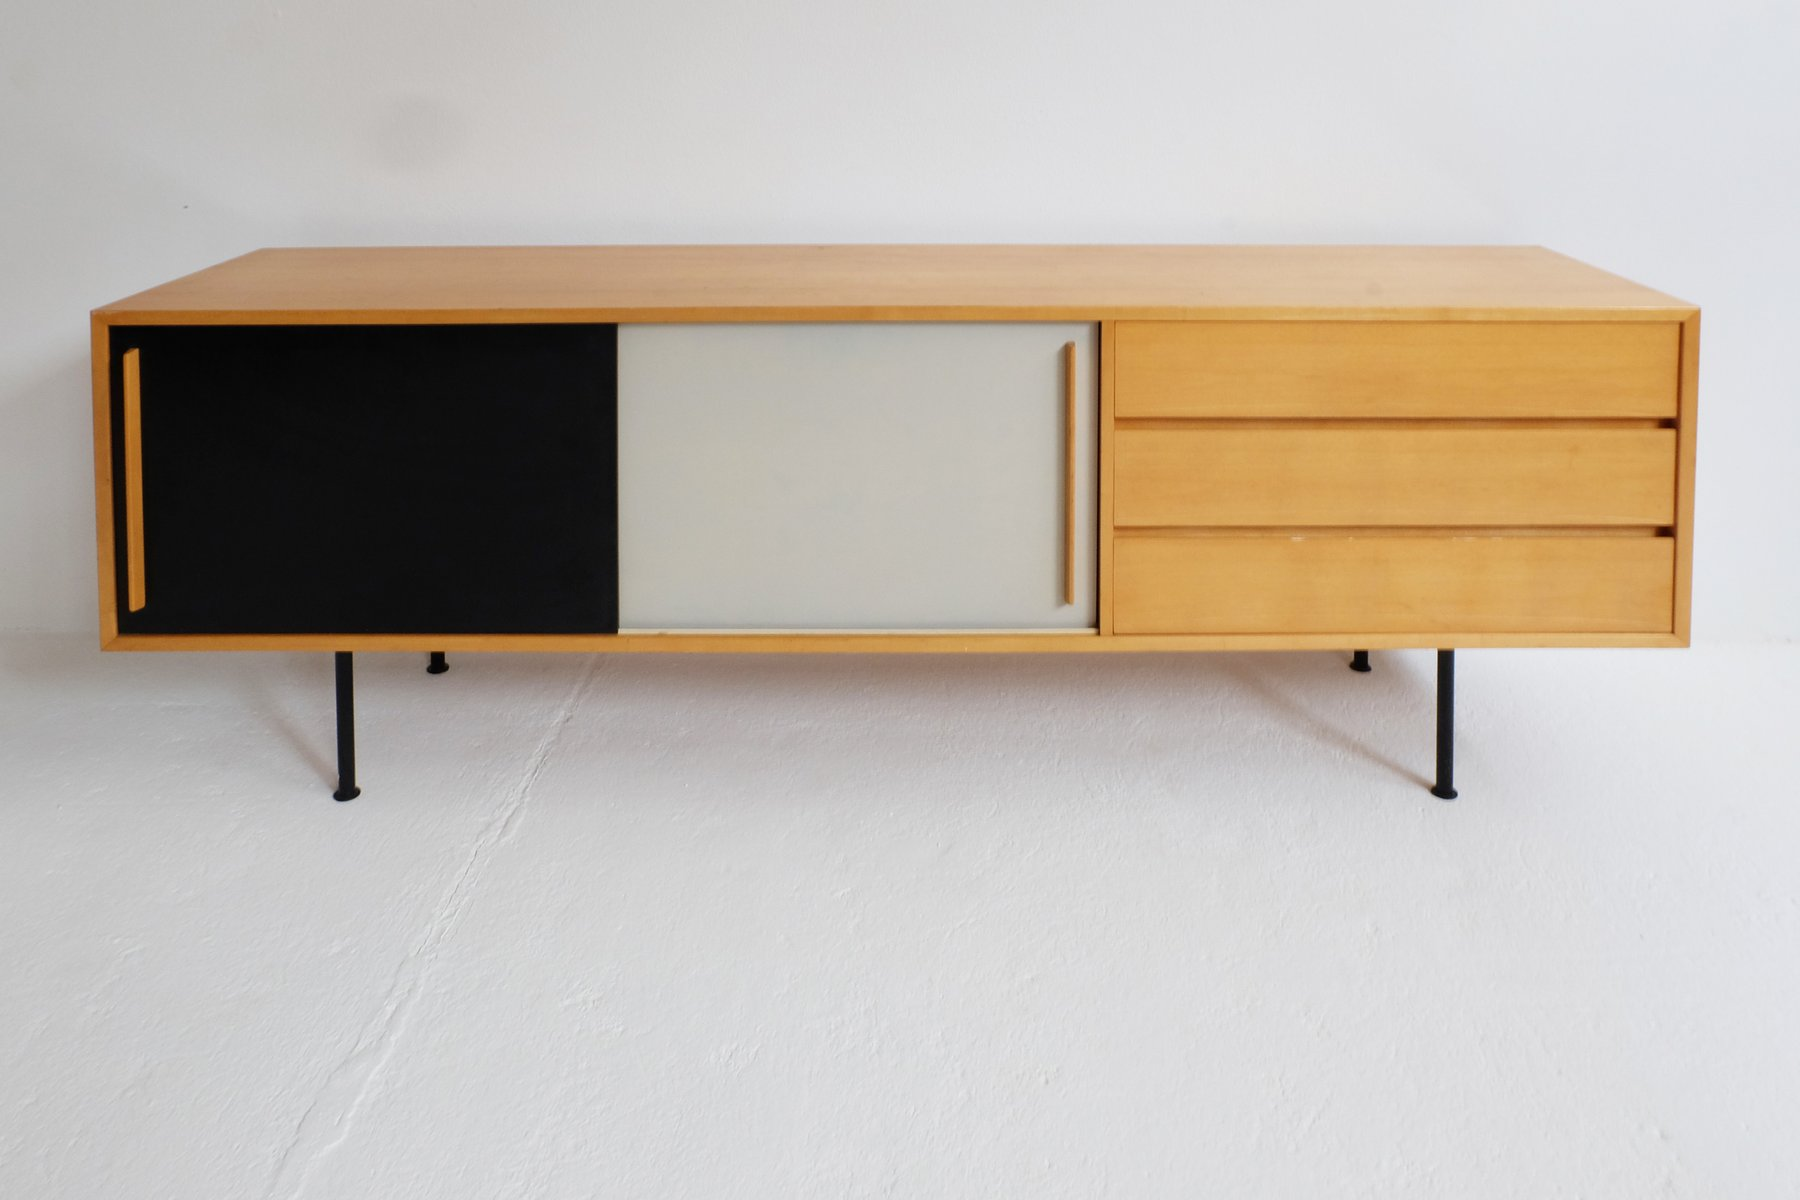 Vintage swiss sideboard by kurt thut for thut m bel for for Sideboard 2 m breit